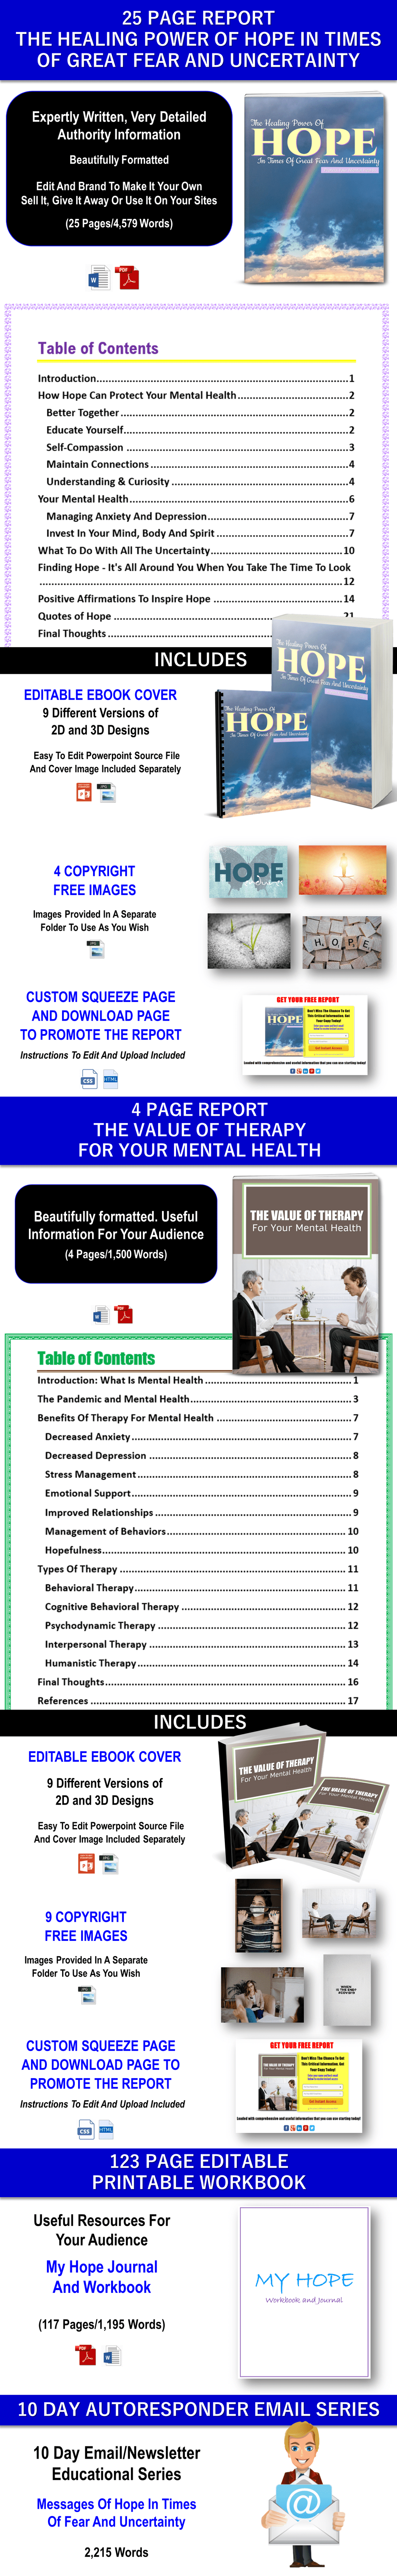 Hope And Value Of Therapy For Mental Health Content - Private Label Rights